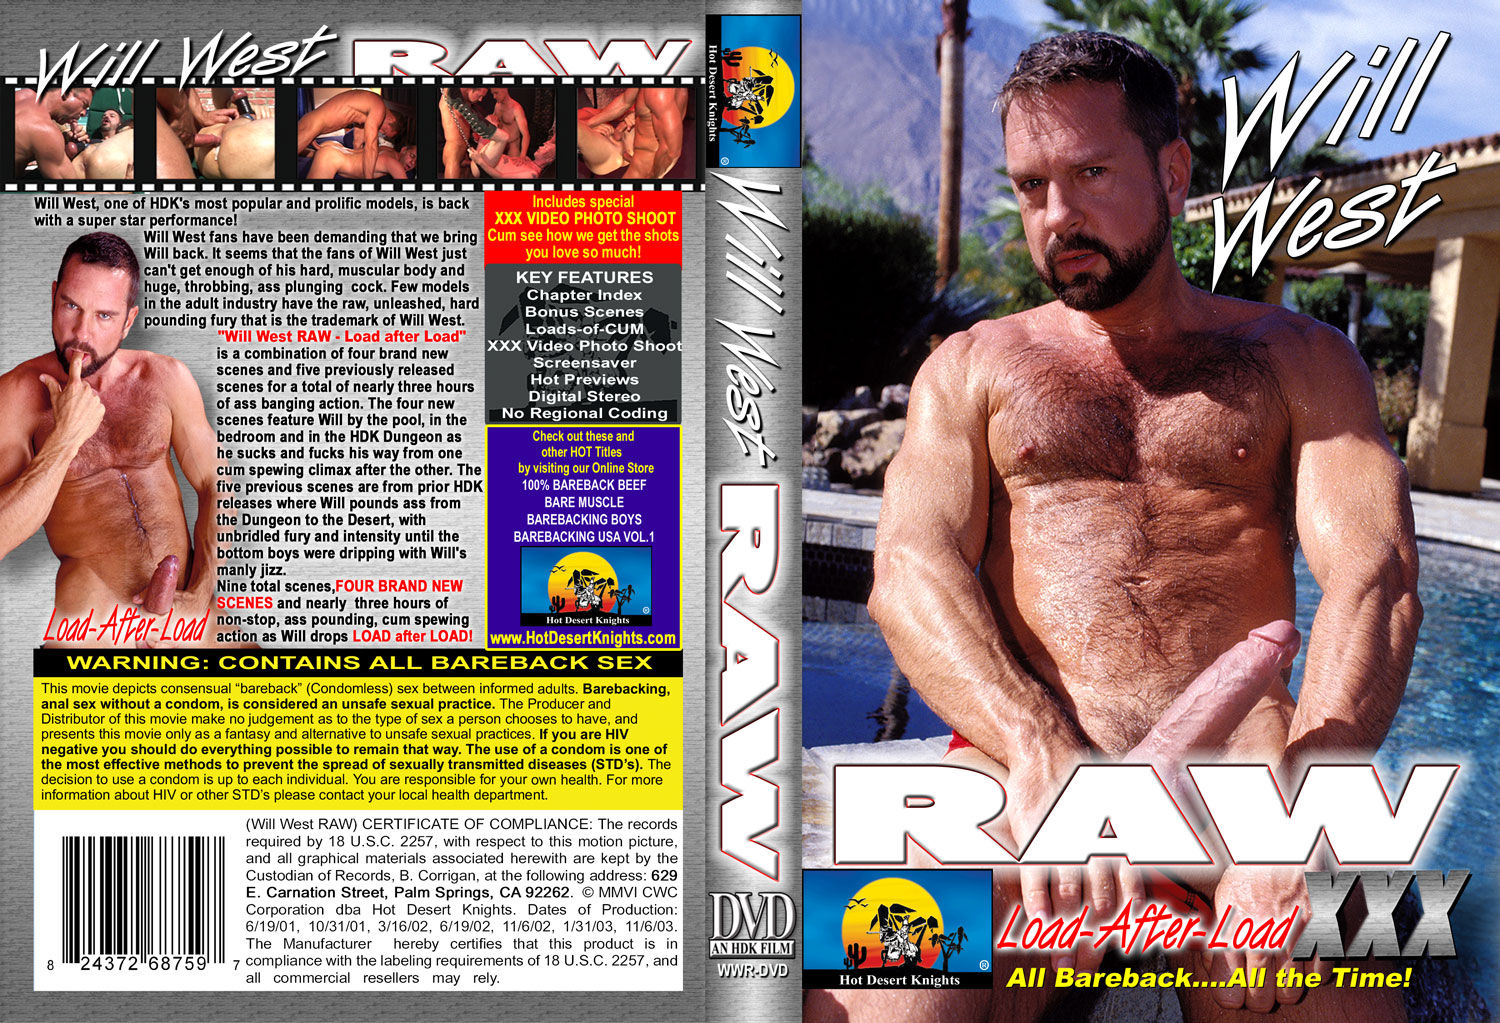 HDK Movie: WILL WEST RAW